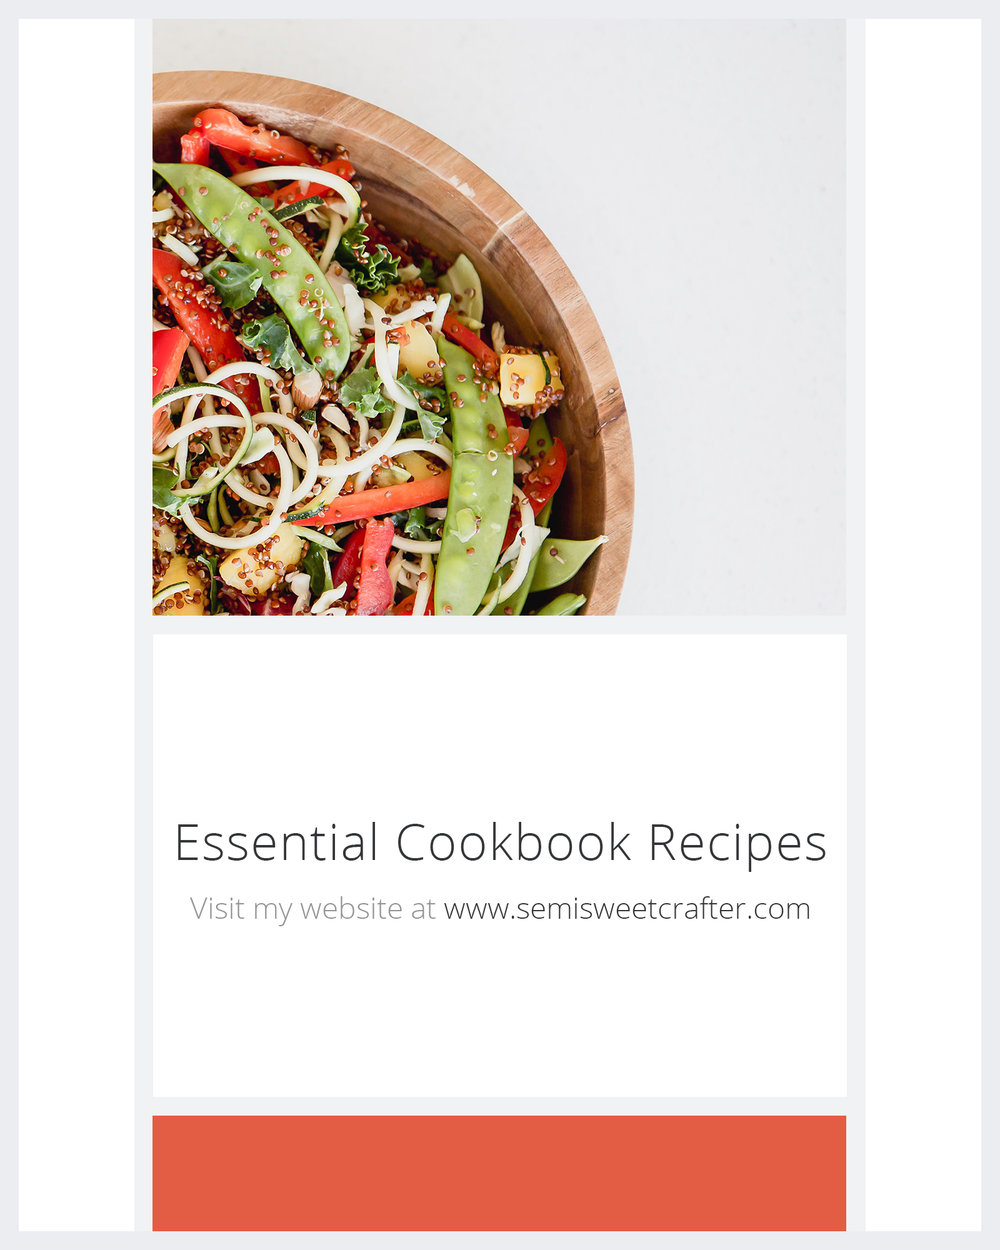 EssentialCookbookRecipes.jpg